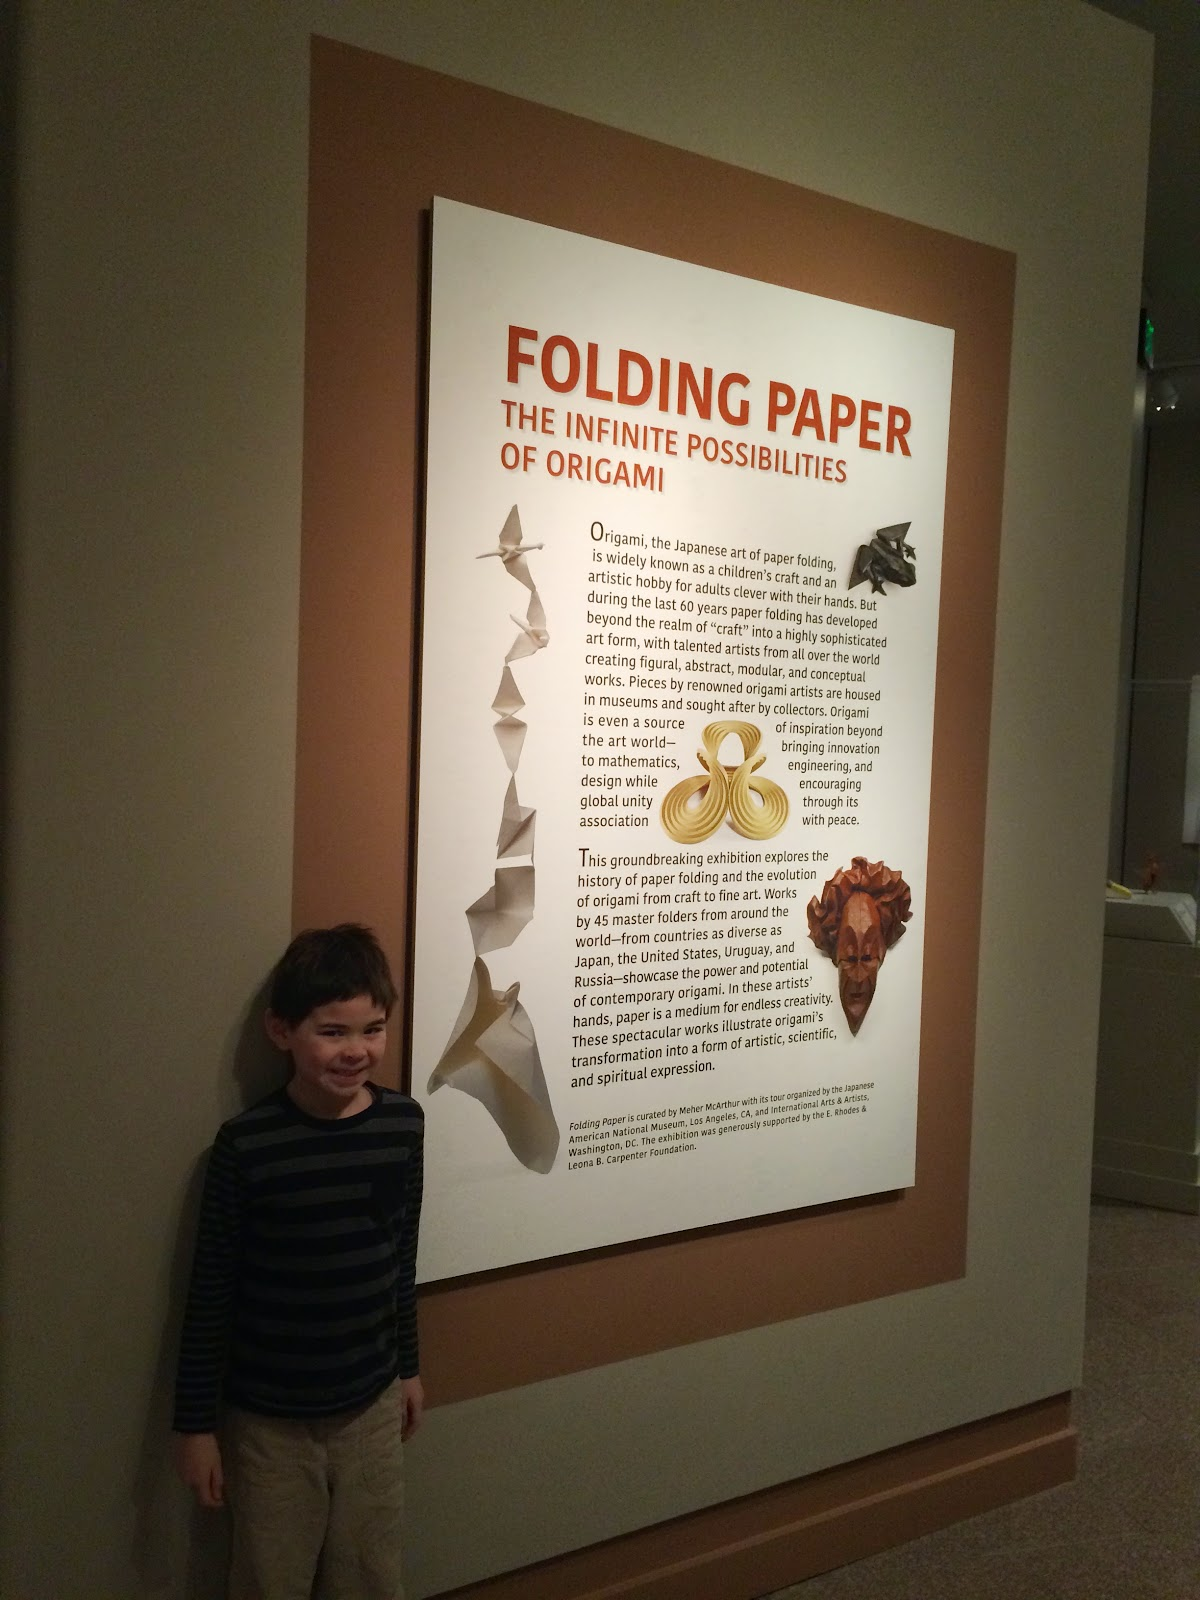 Field trip to provo origami exhibit adventures with theo we dont often go down south to utah county on our adventures but we took the opportunity to head to provo yesterday to visit the wonderful folding paper jeuxipadfo Image collections